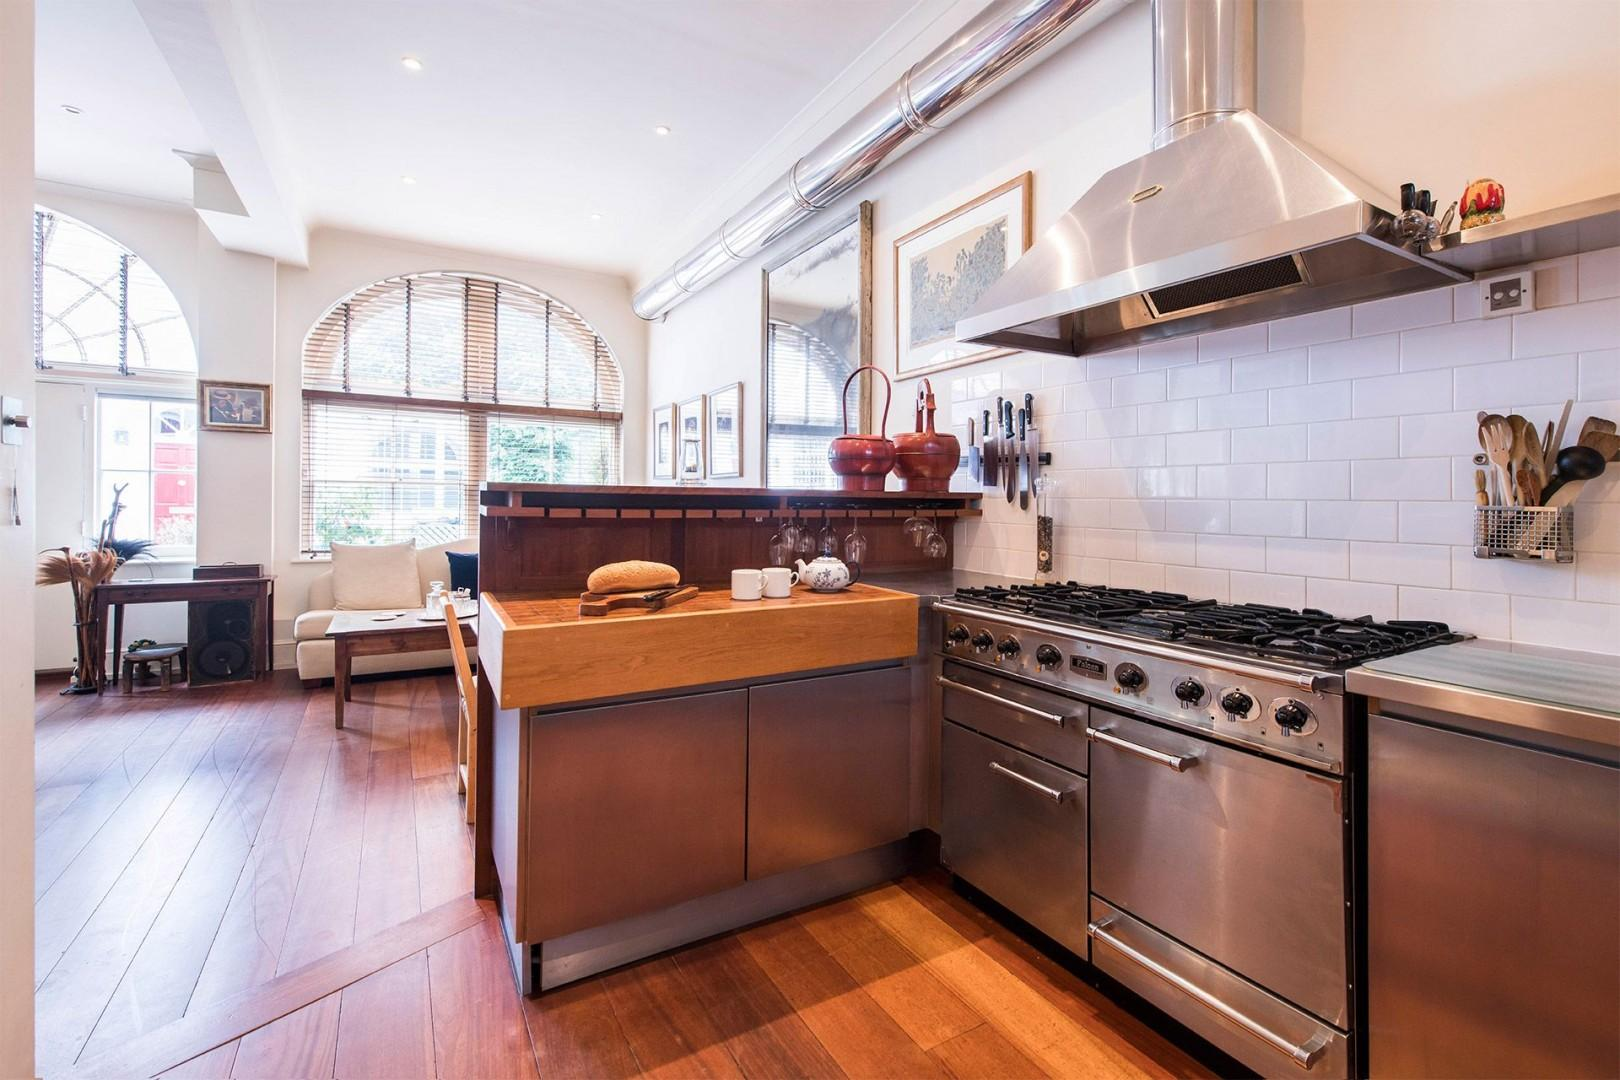 High-end finishes in the kitchen